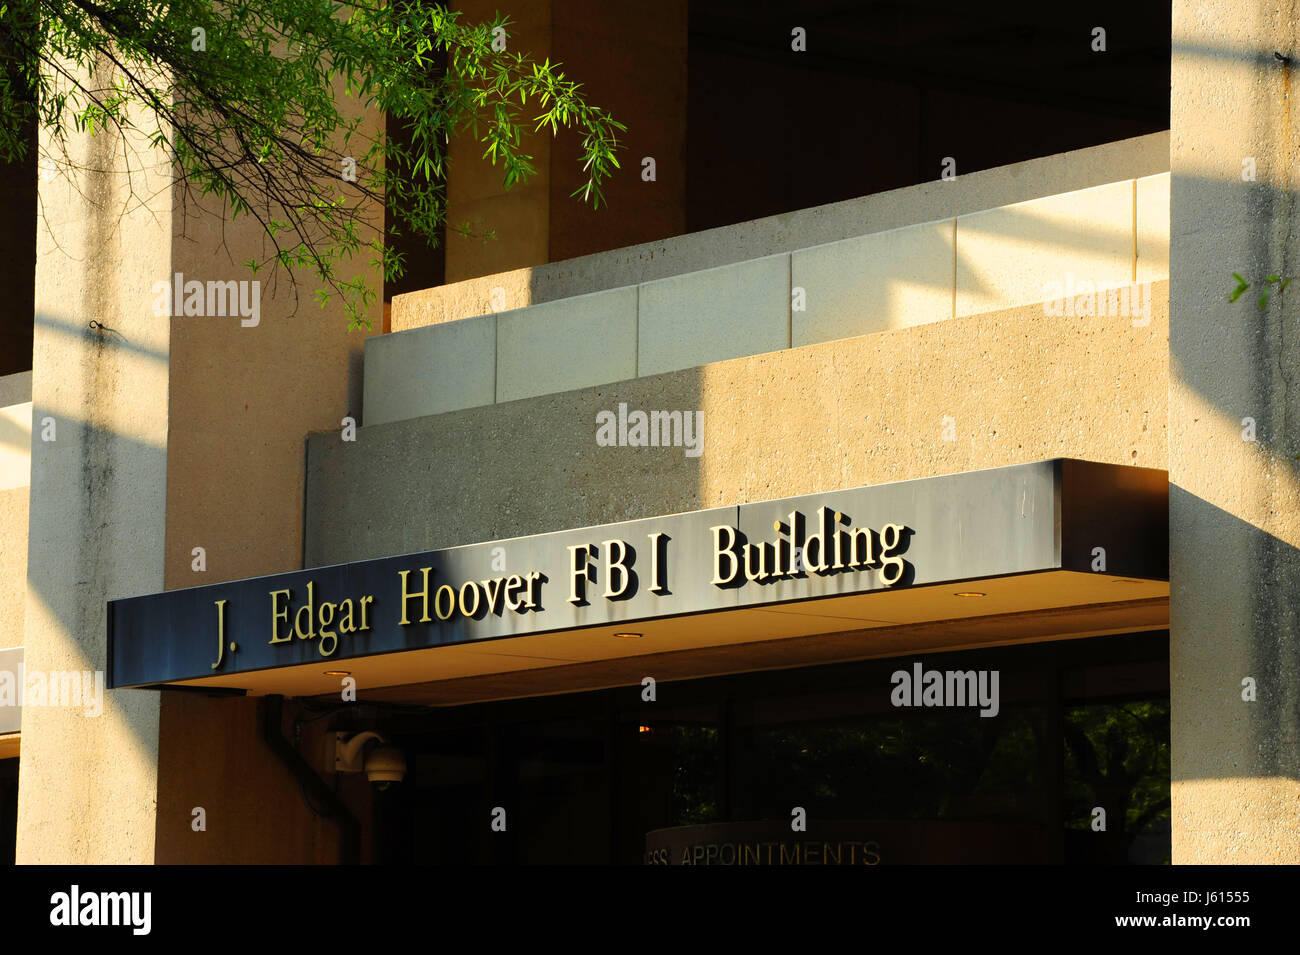 USA Washington DC FBI Federal Bureau of Investigation J. Edgar Hoover Building headquarters - Stock Image